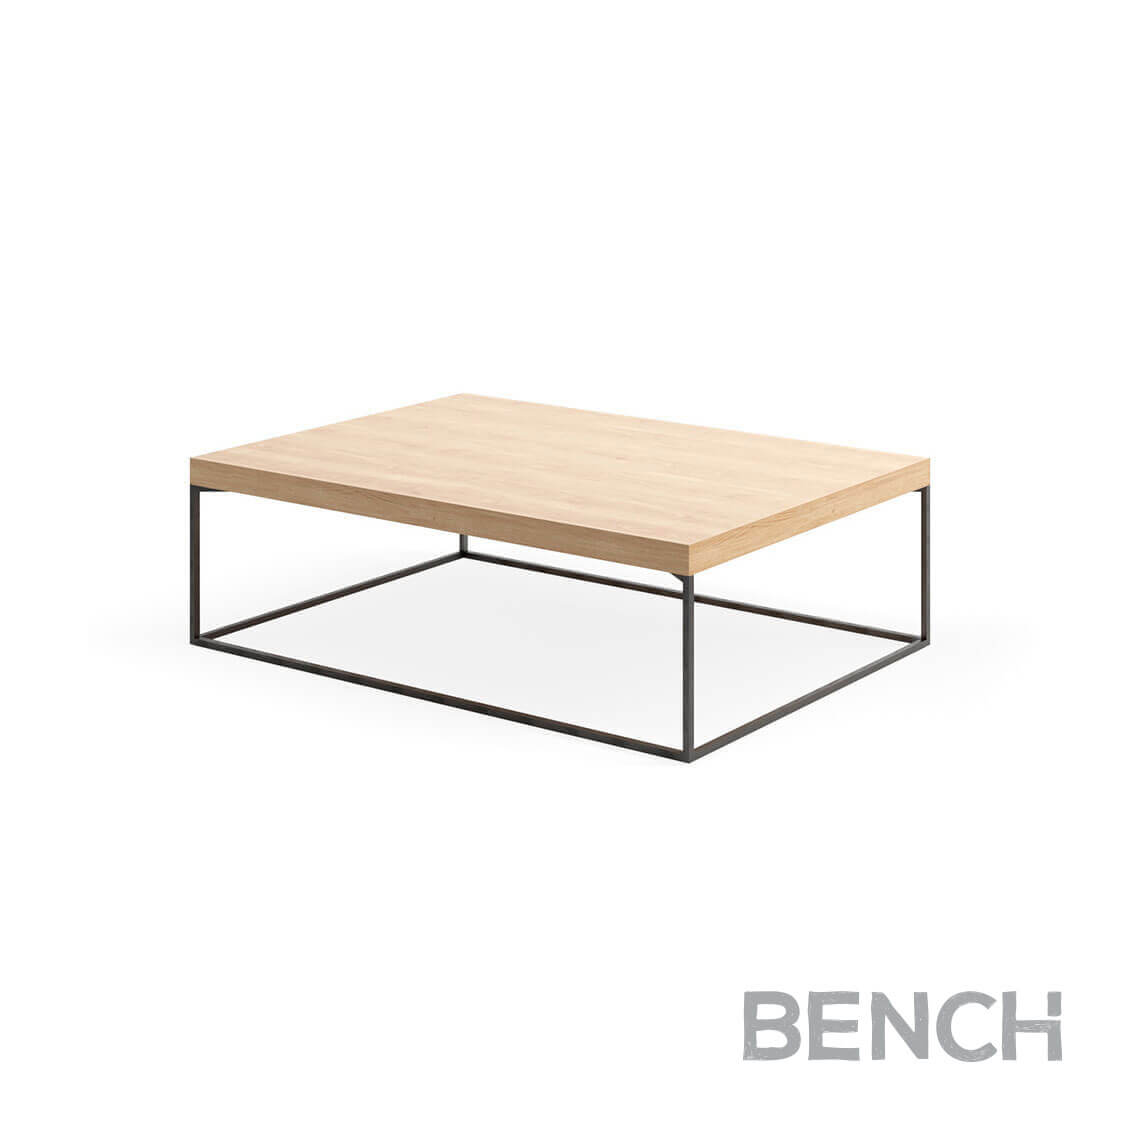 ER Square Coffee Table  | Bench